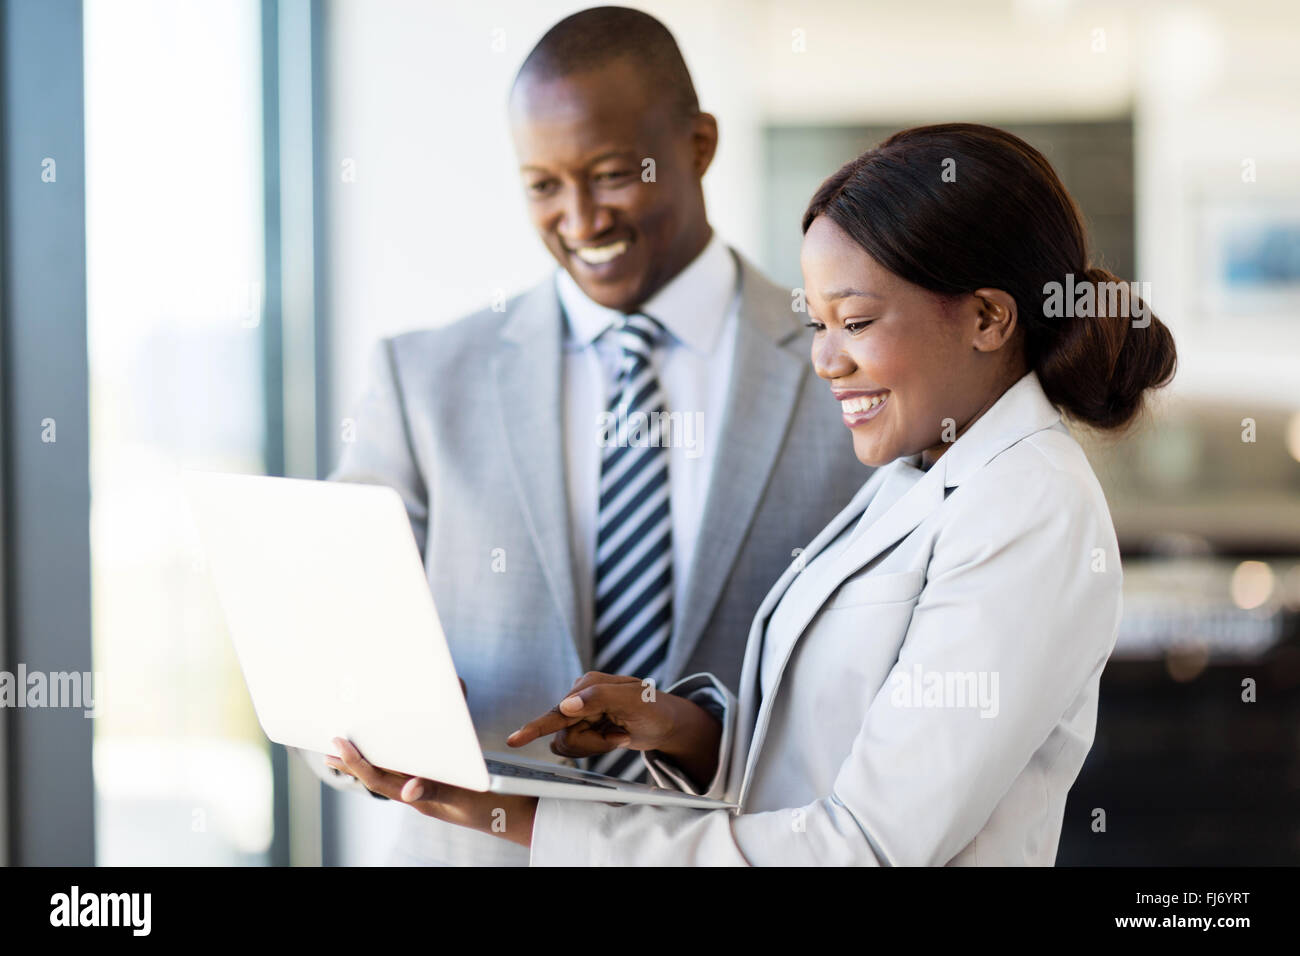 professional car sales consultants working on laptop computer inside vehicle showroom - Stock Image